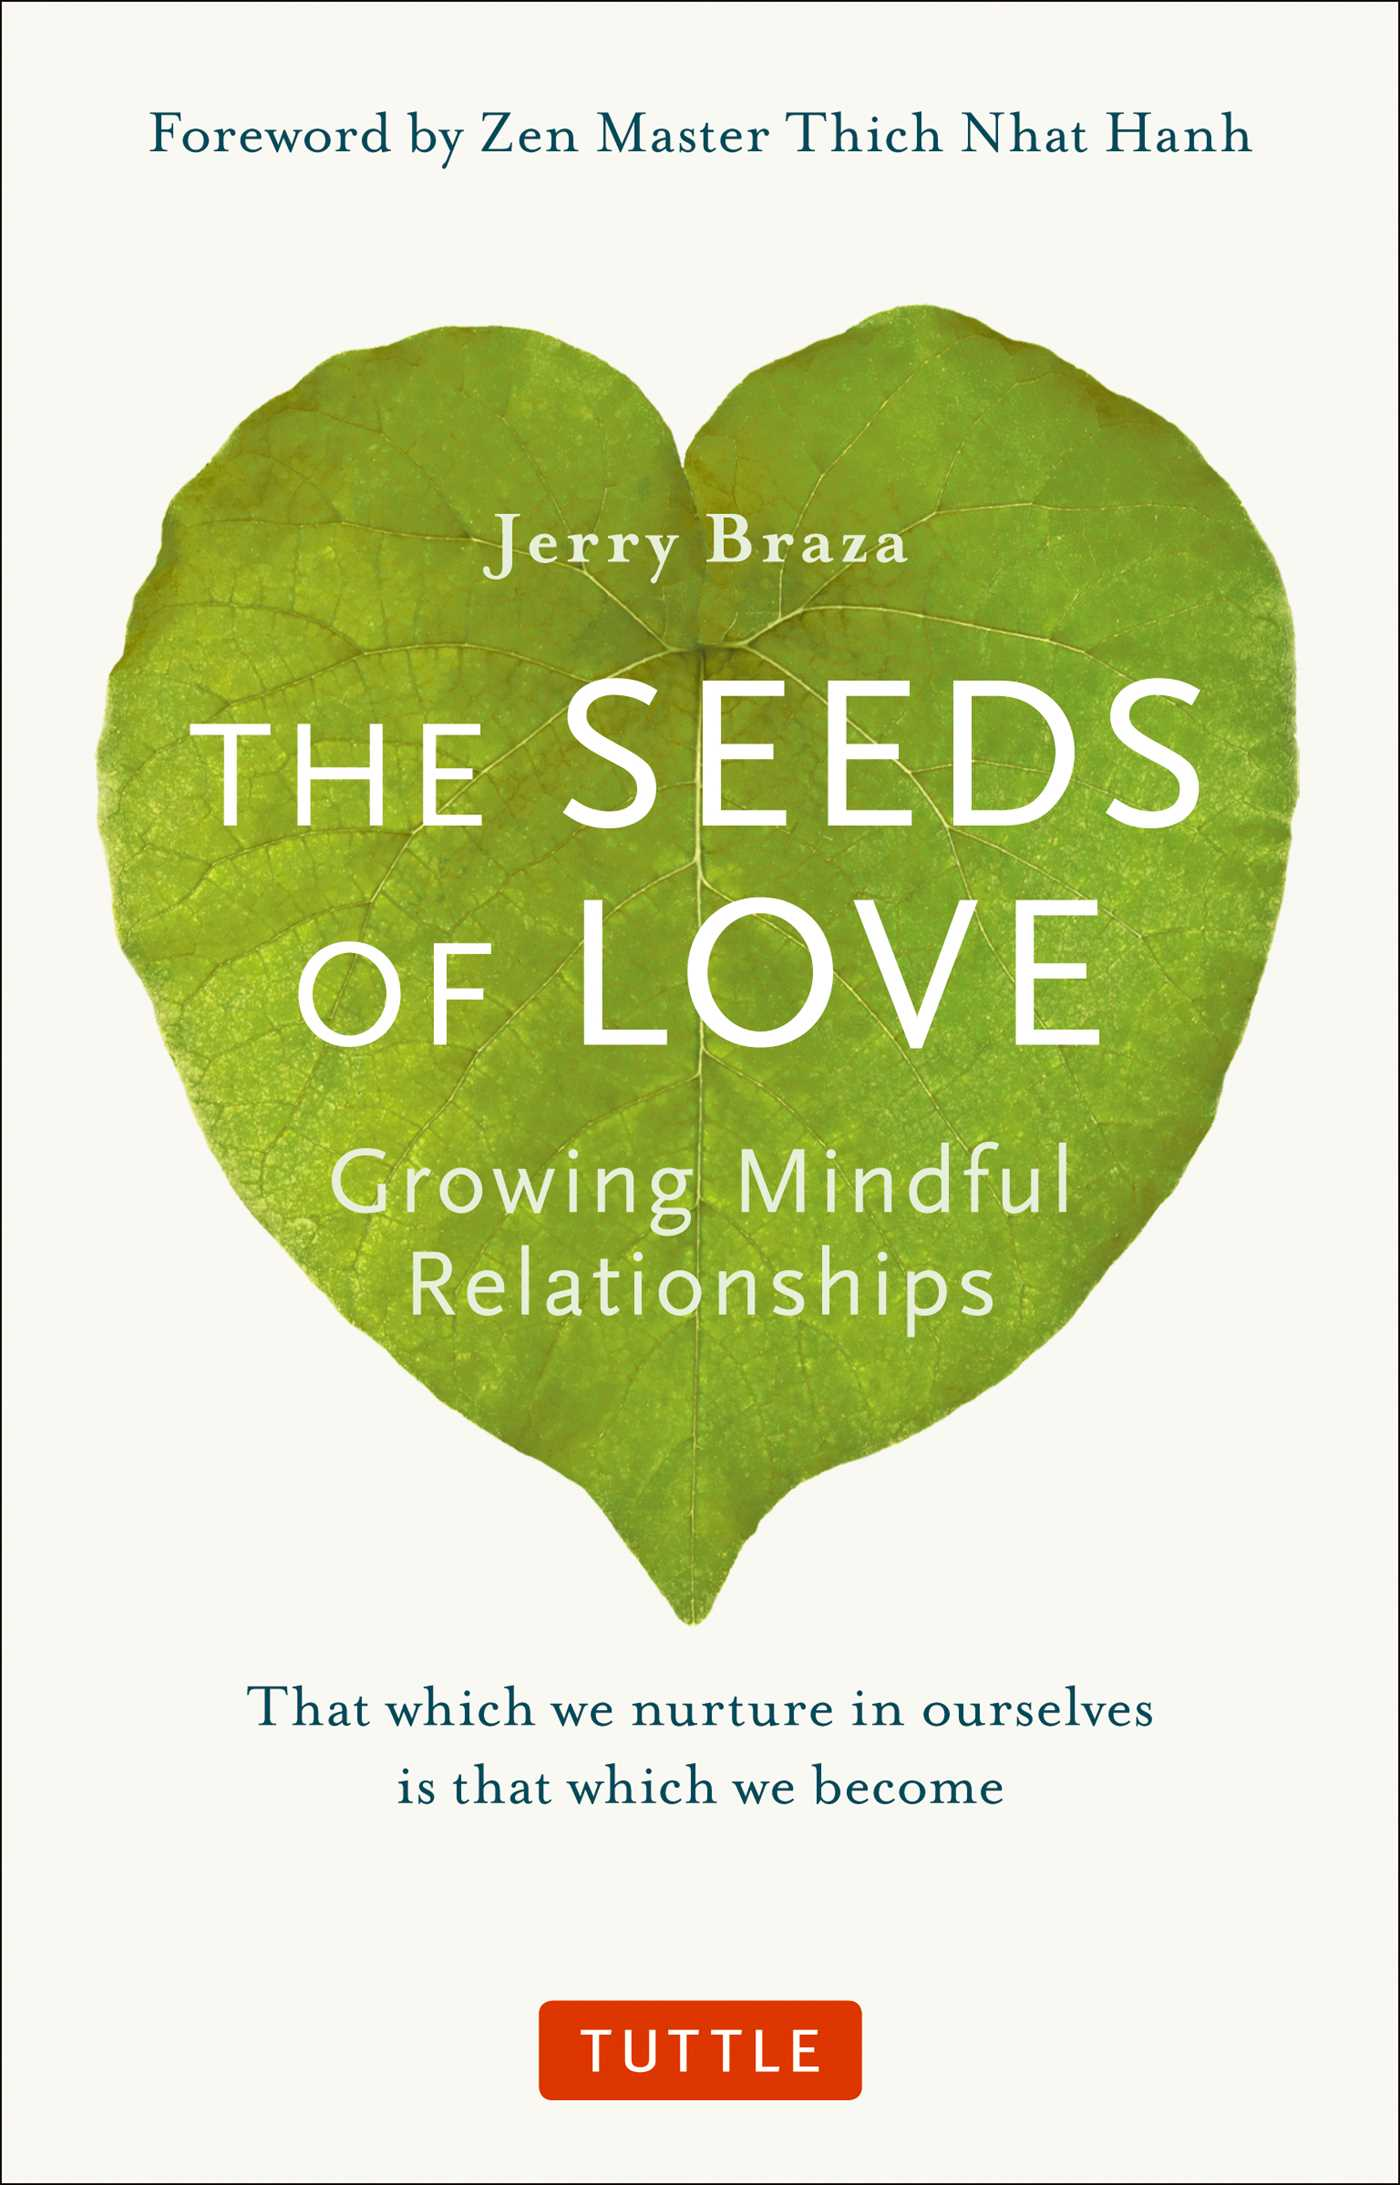 The seeds of love 9780804848374 hr